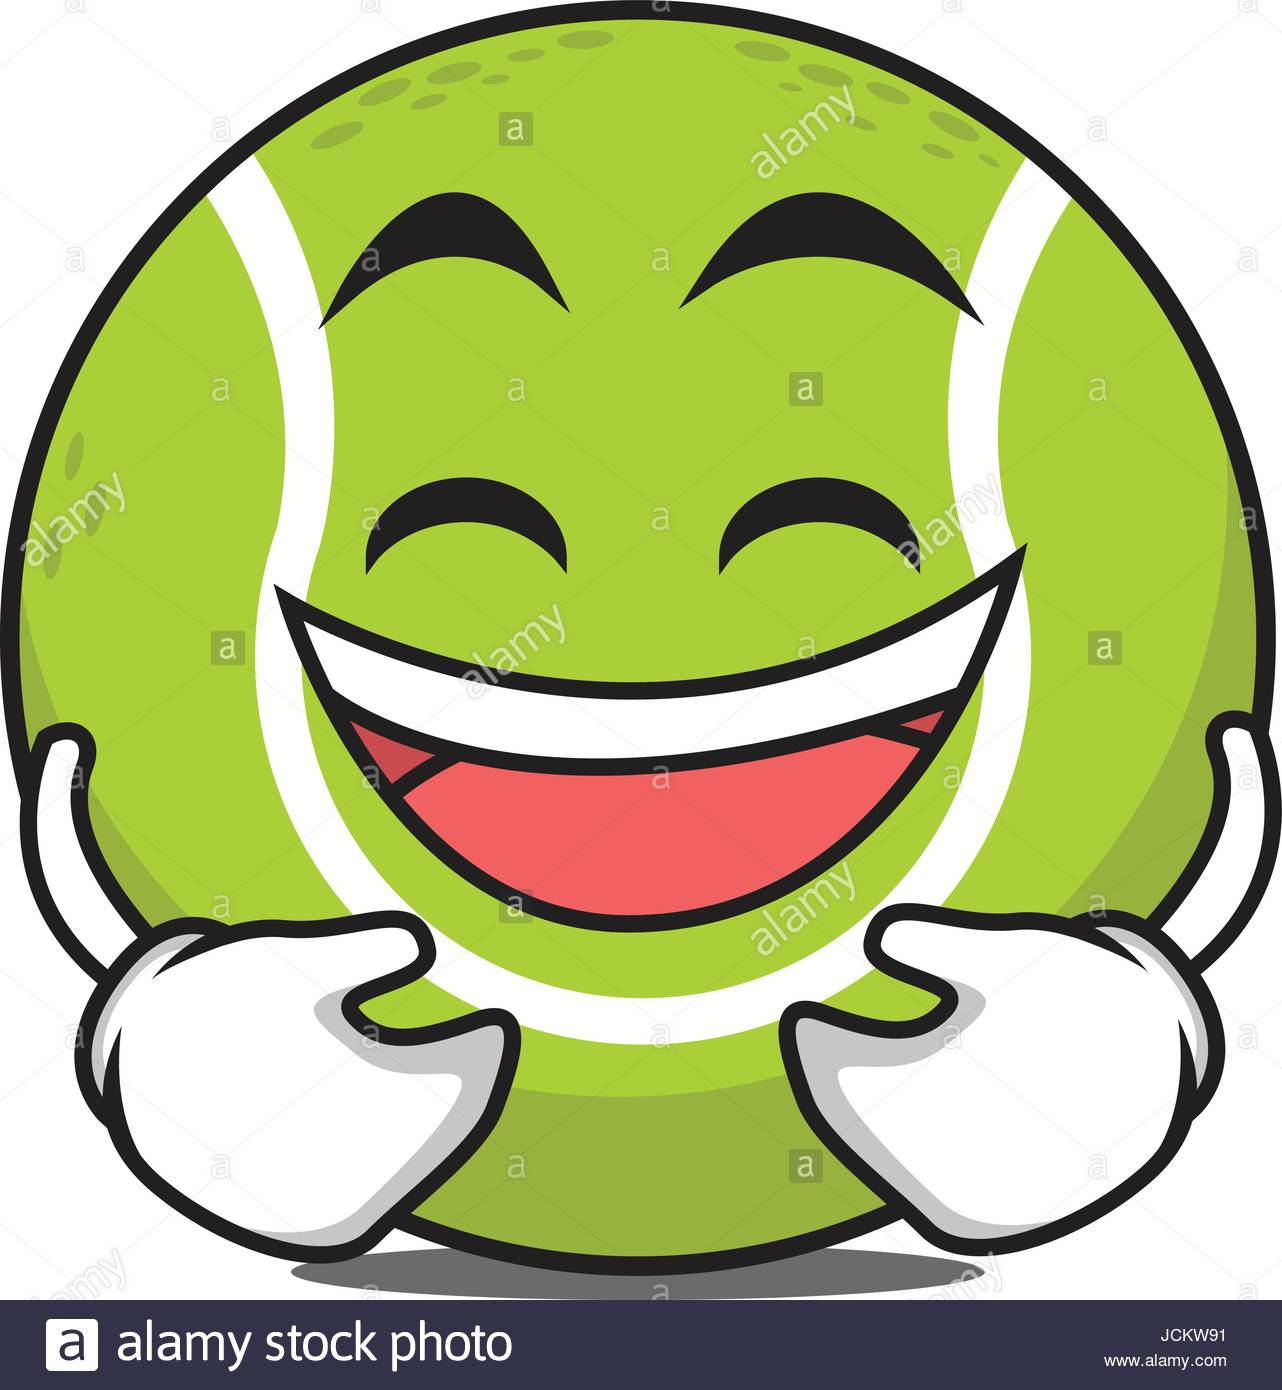 1282x1390 Laughing Tennis Ball Cartoon Character Vector Illustration Stock